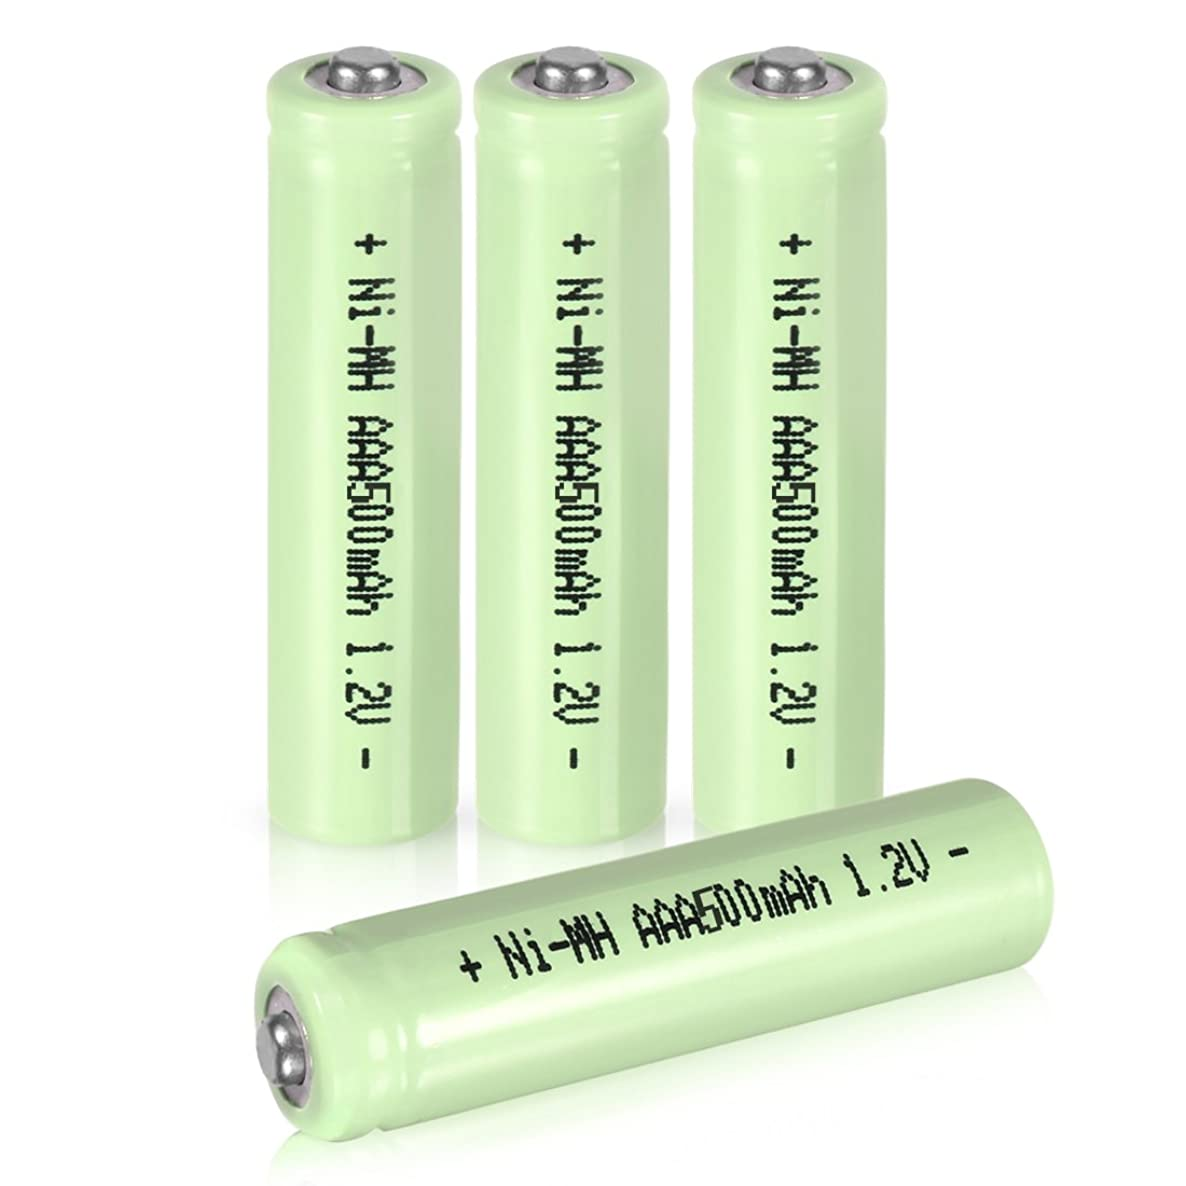 uxcell 4 Pcs 1.2V 500mAh AAA Ni-MH Battery Rechargeable Batteries Button Top for LED Torch Flashlight Headlamp